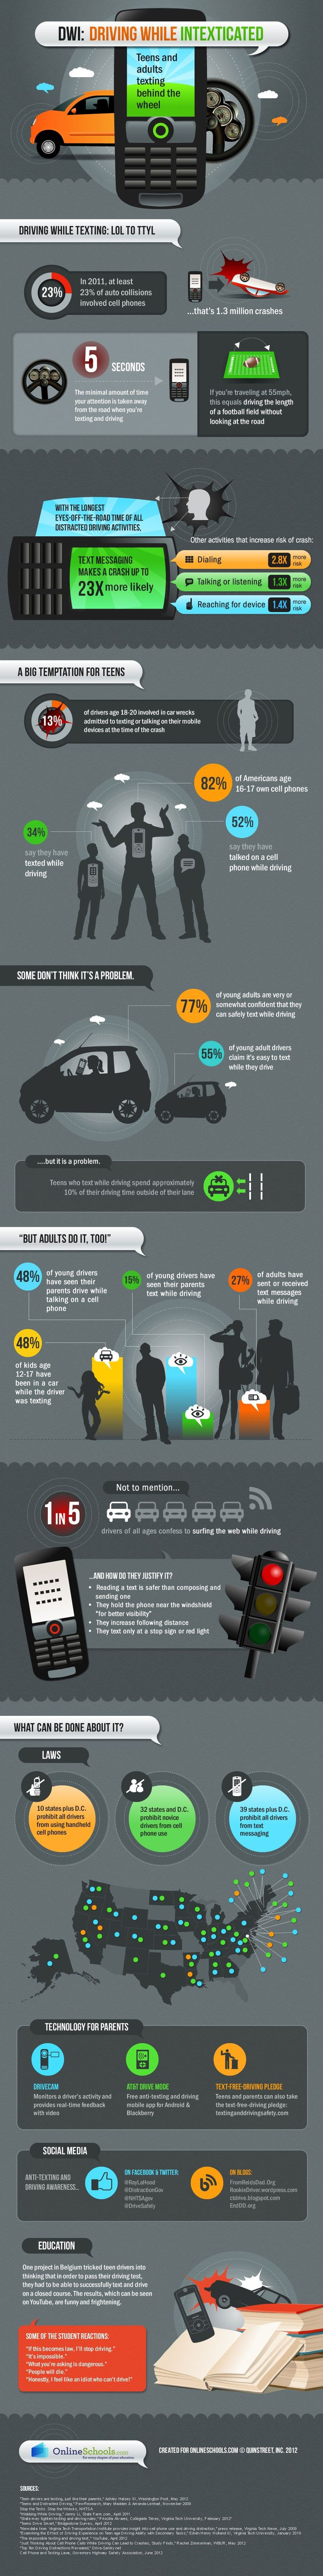 texting while driving statistics When you text while driving, you are putting yourself and other drivers around you at a great risk for wrecking don't use your phone when traveling.